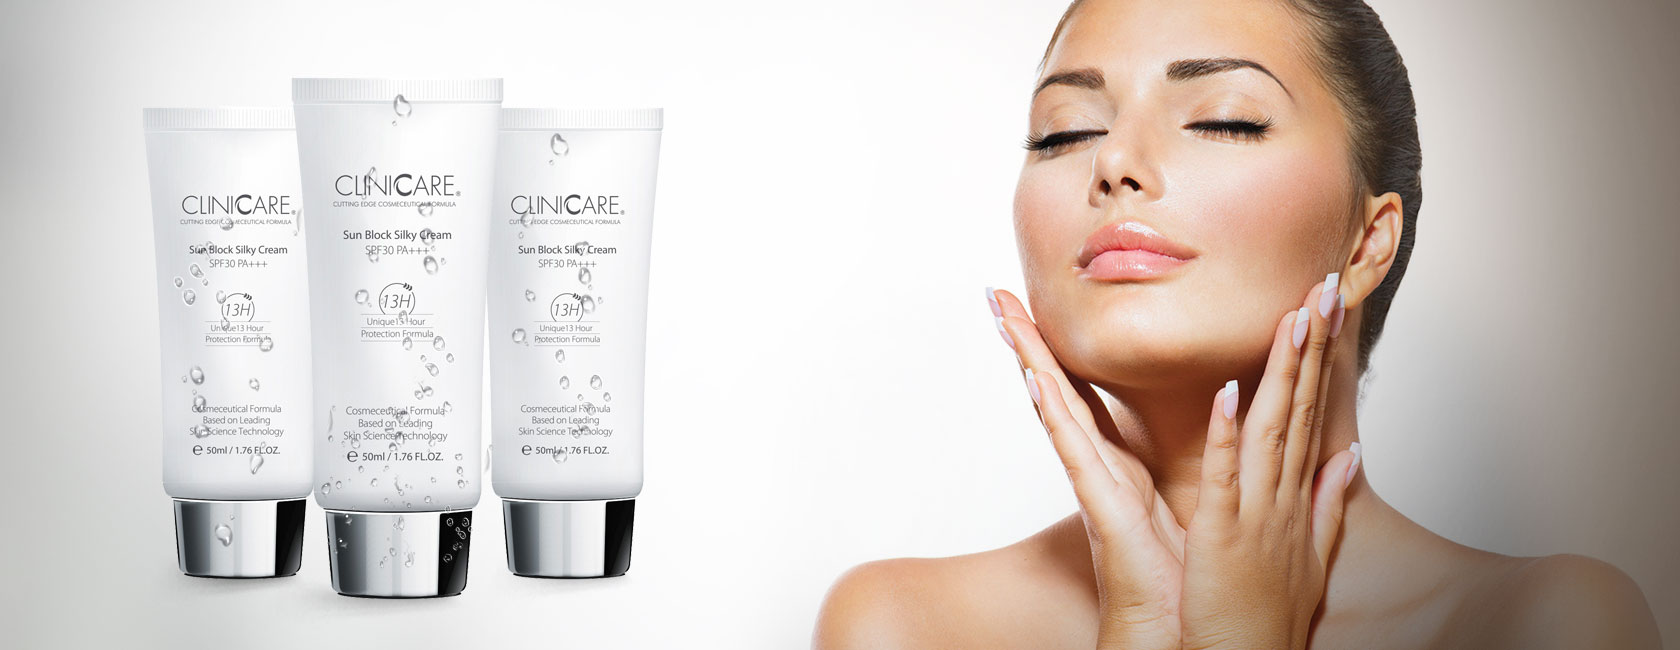 Tratamente dermato-cosmetice Ideal Contour Face & Body Skin Center